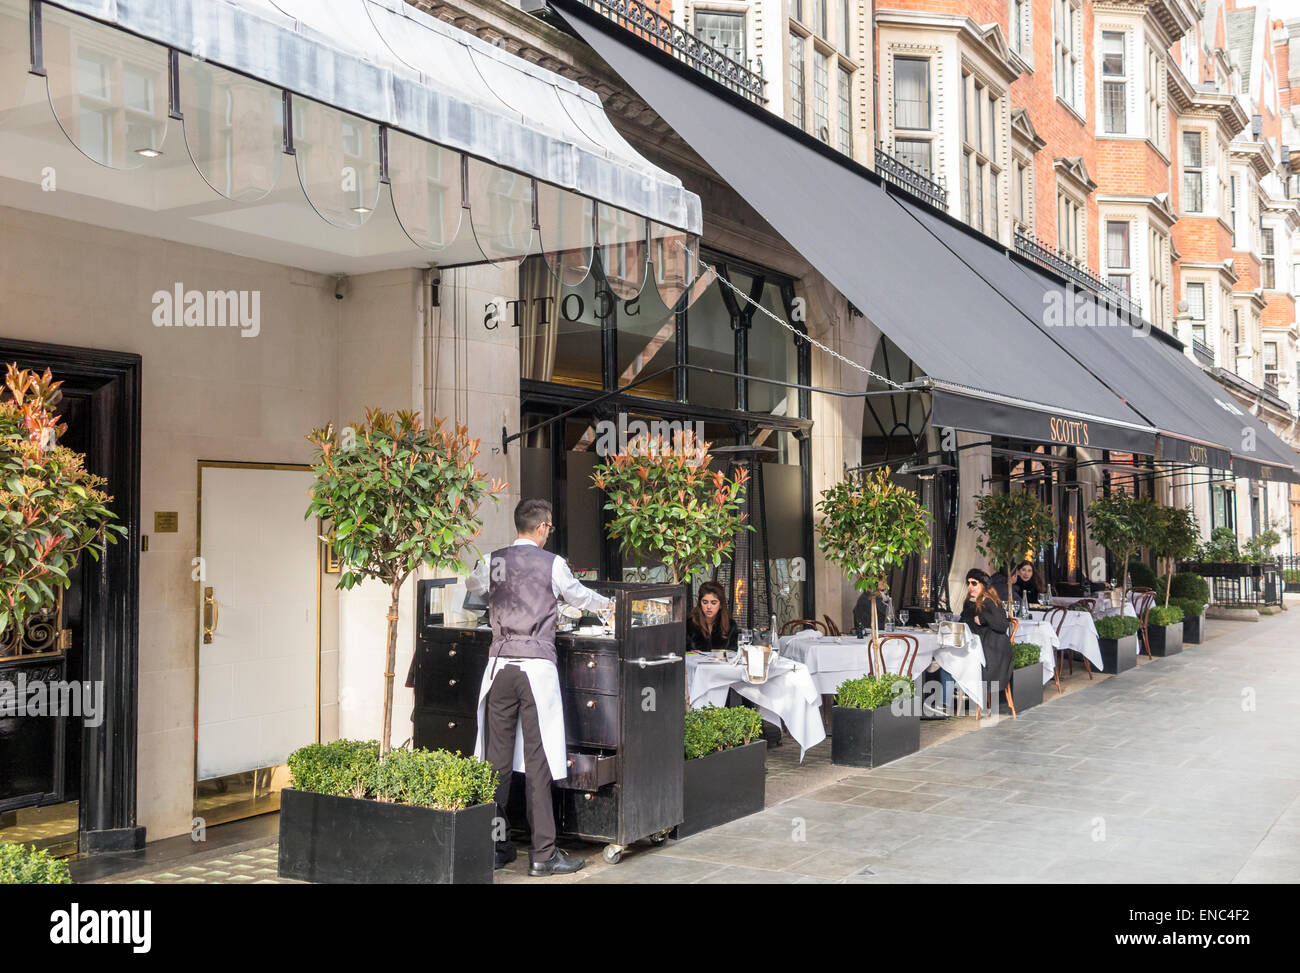 Scott's of Mayfair, famous high class, expensive, fine dining restaurant, Mayfair. London W1: street view, exterior, - Stock Image